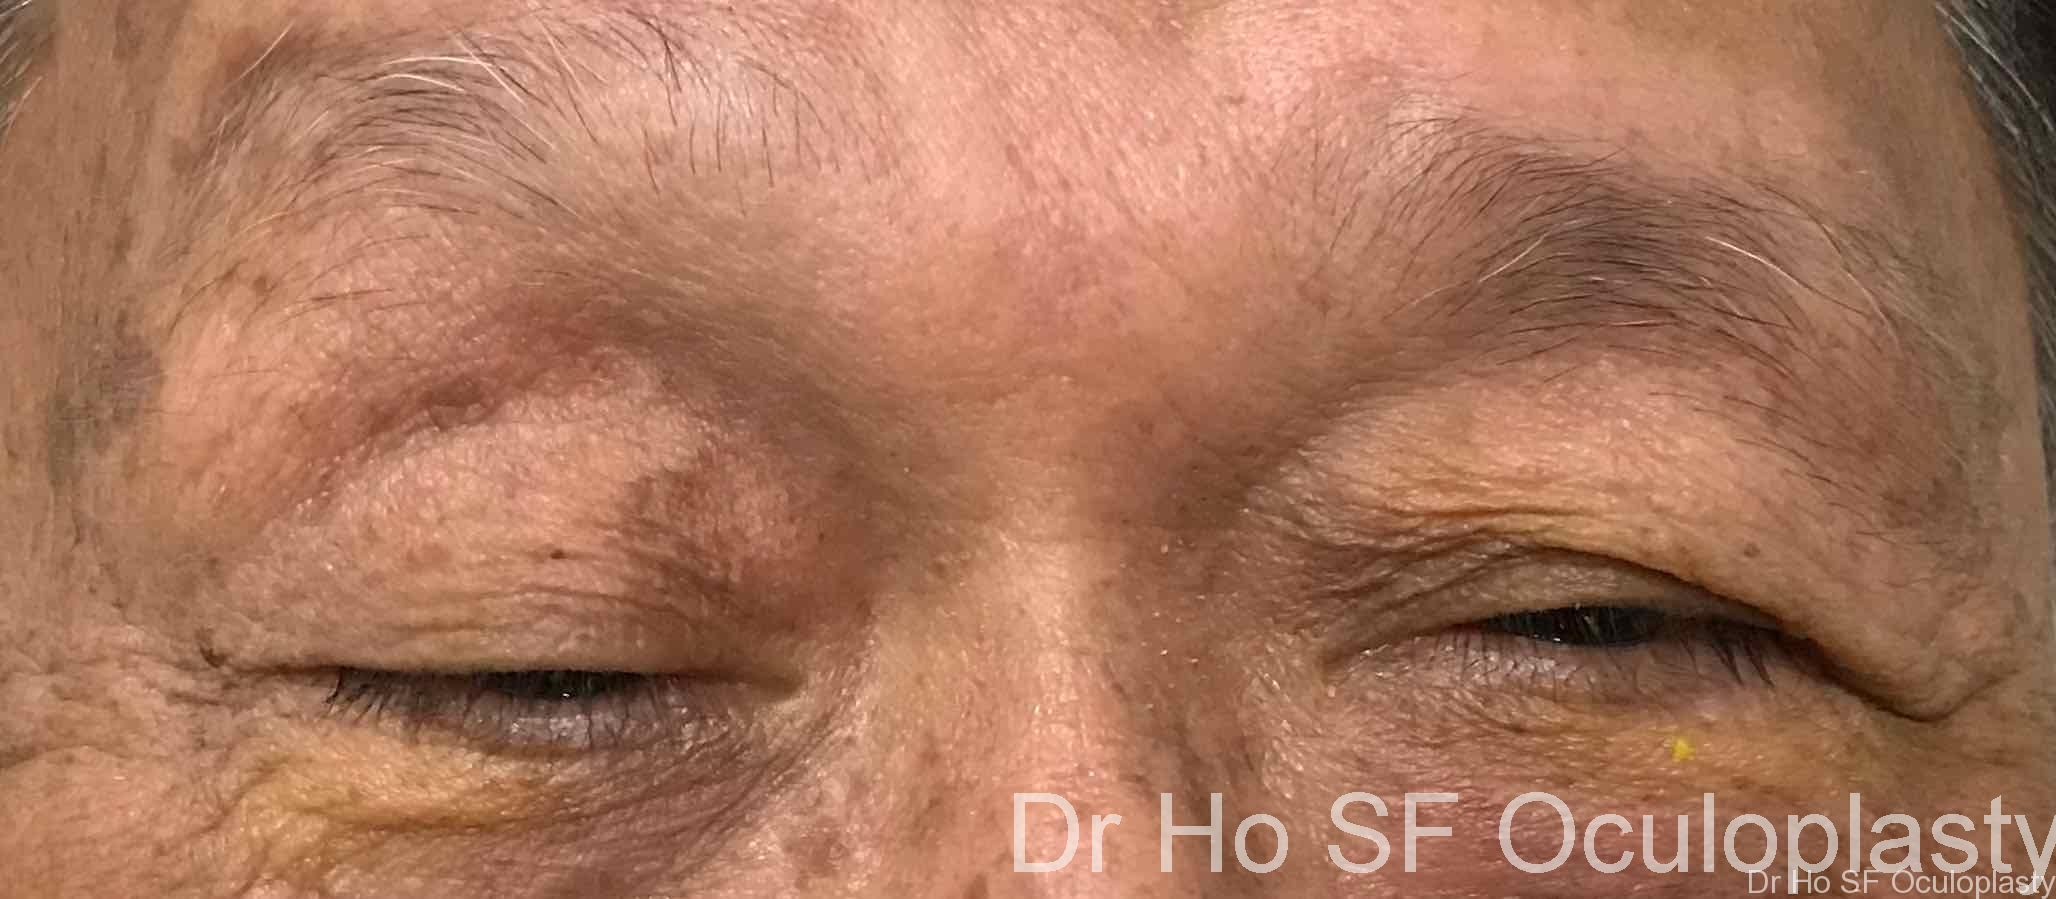 Pre op:  Severe ptosis (Droopy eyelid), right more than left.